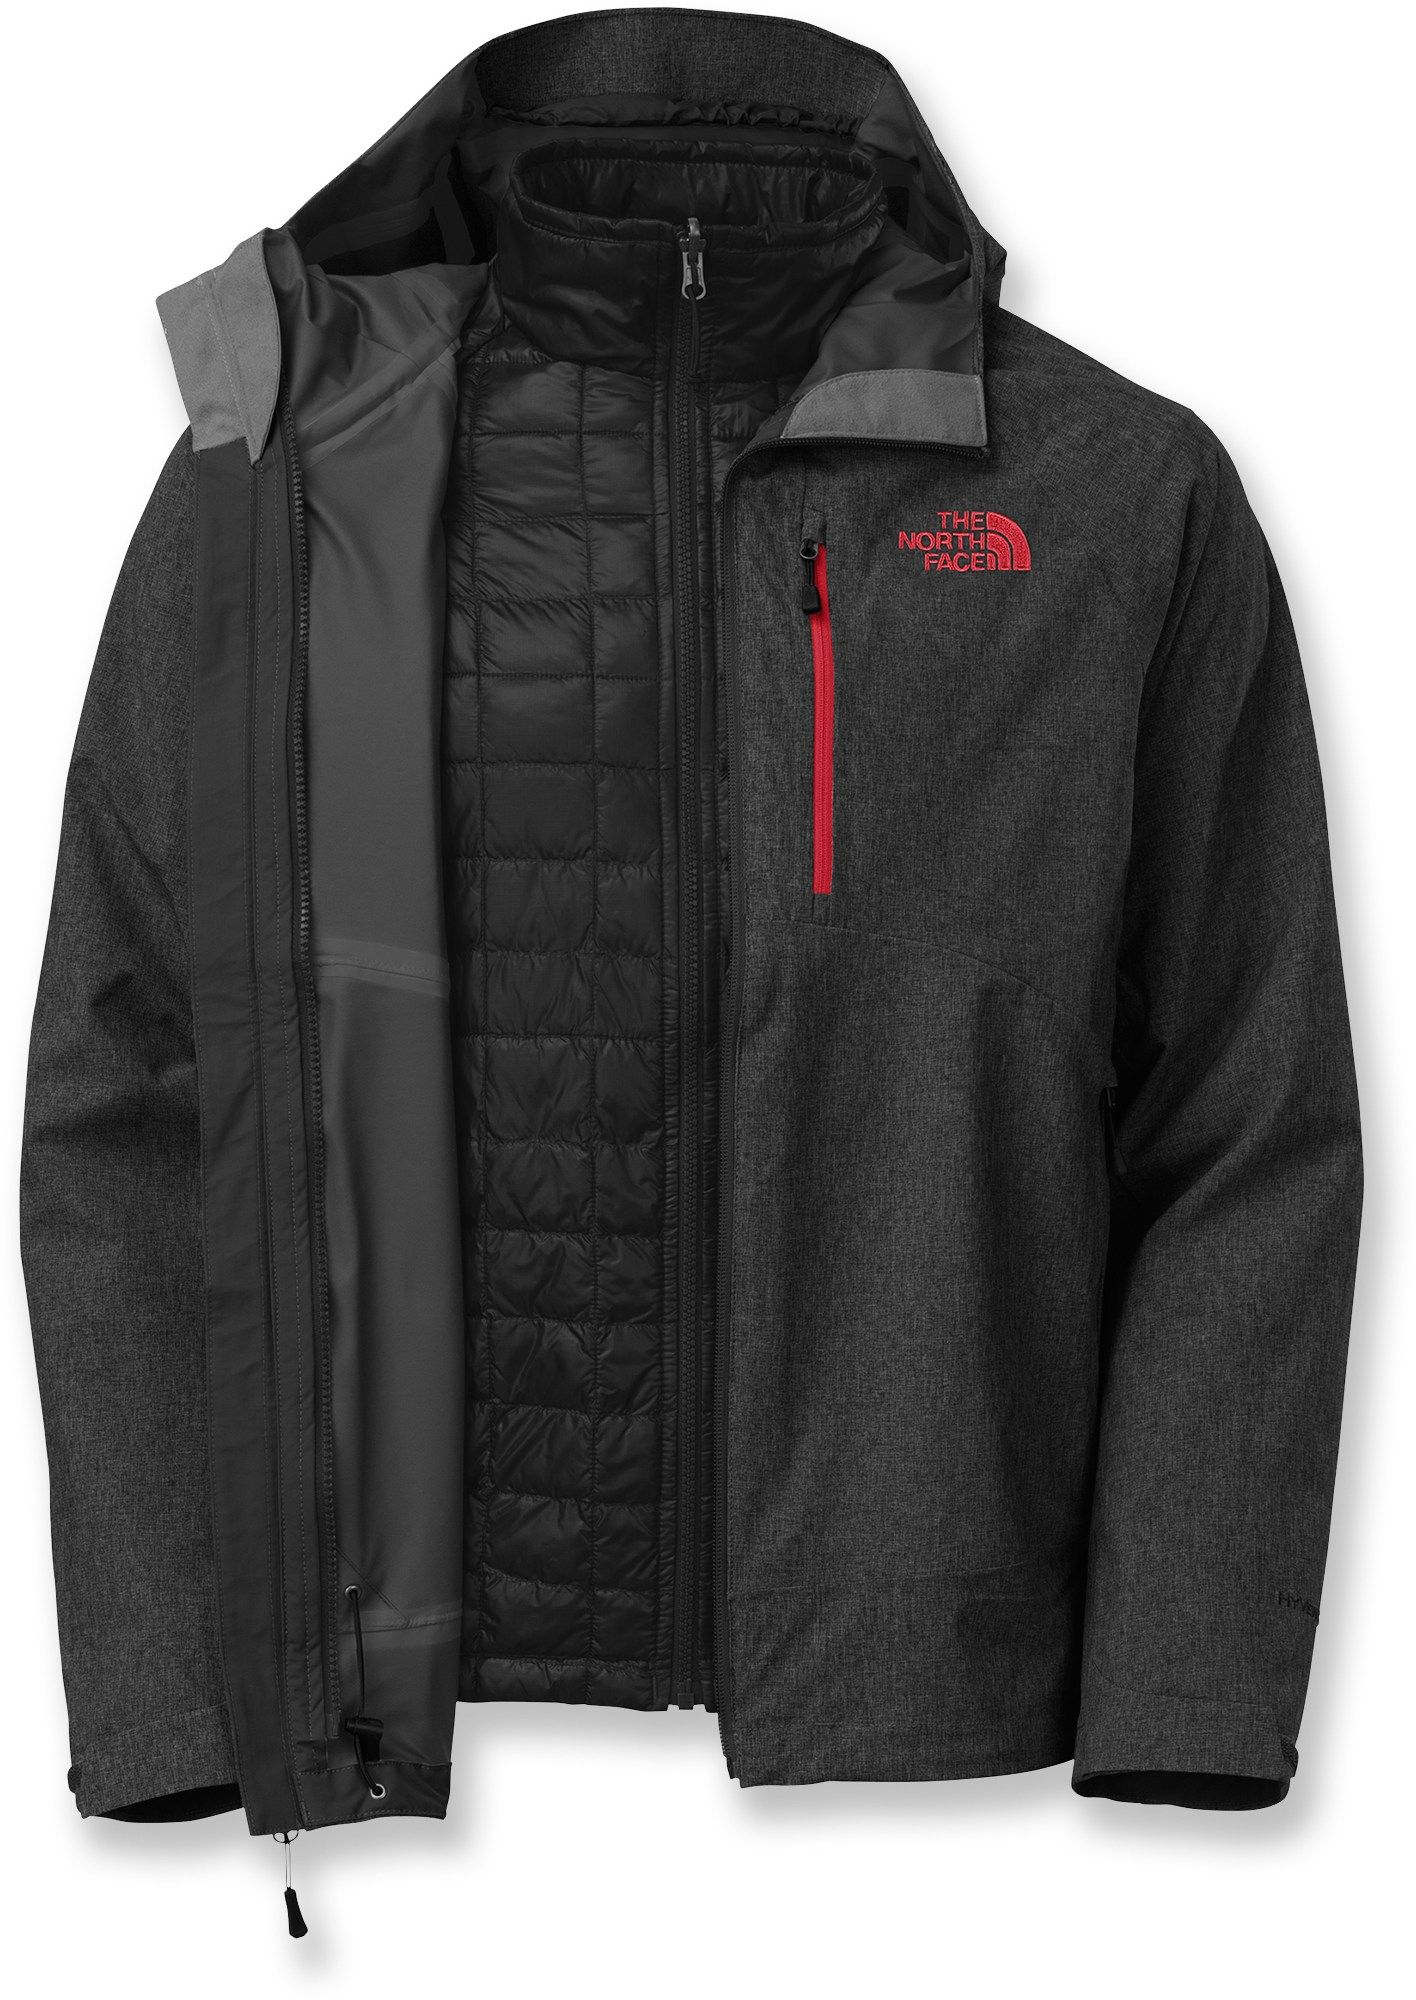 The North Face ThermoBall Triclimate 3-in-1 Jacket - Men s - Free Shipping  at REI.com a46bdb82b8be